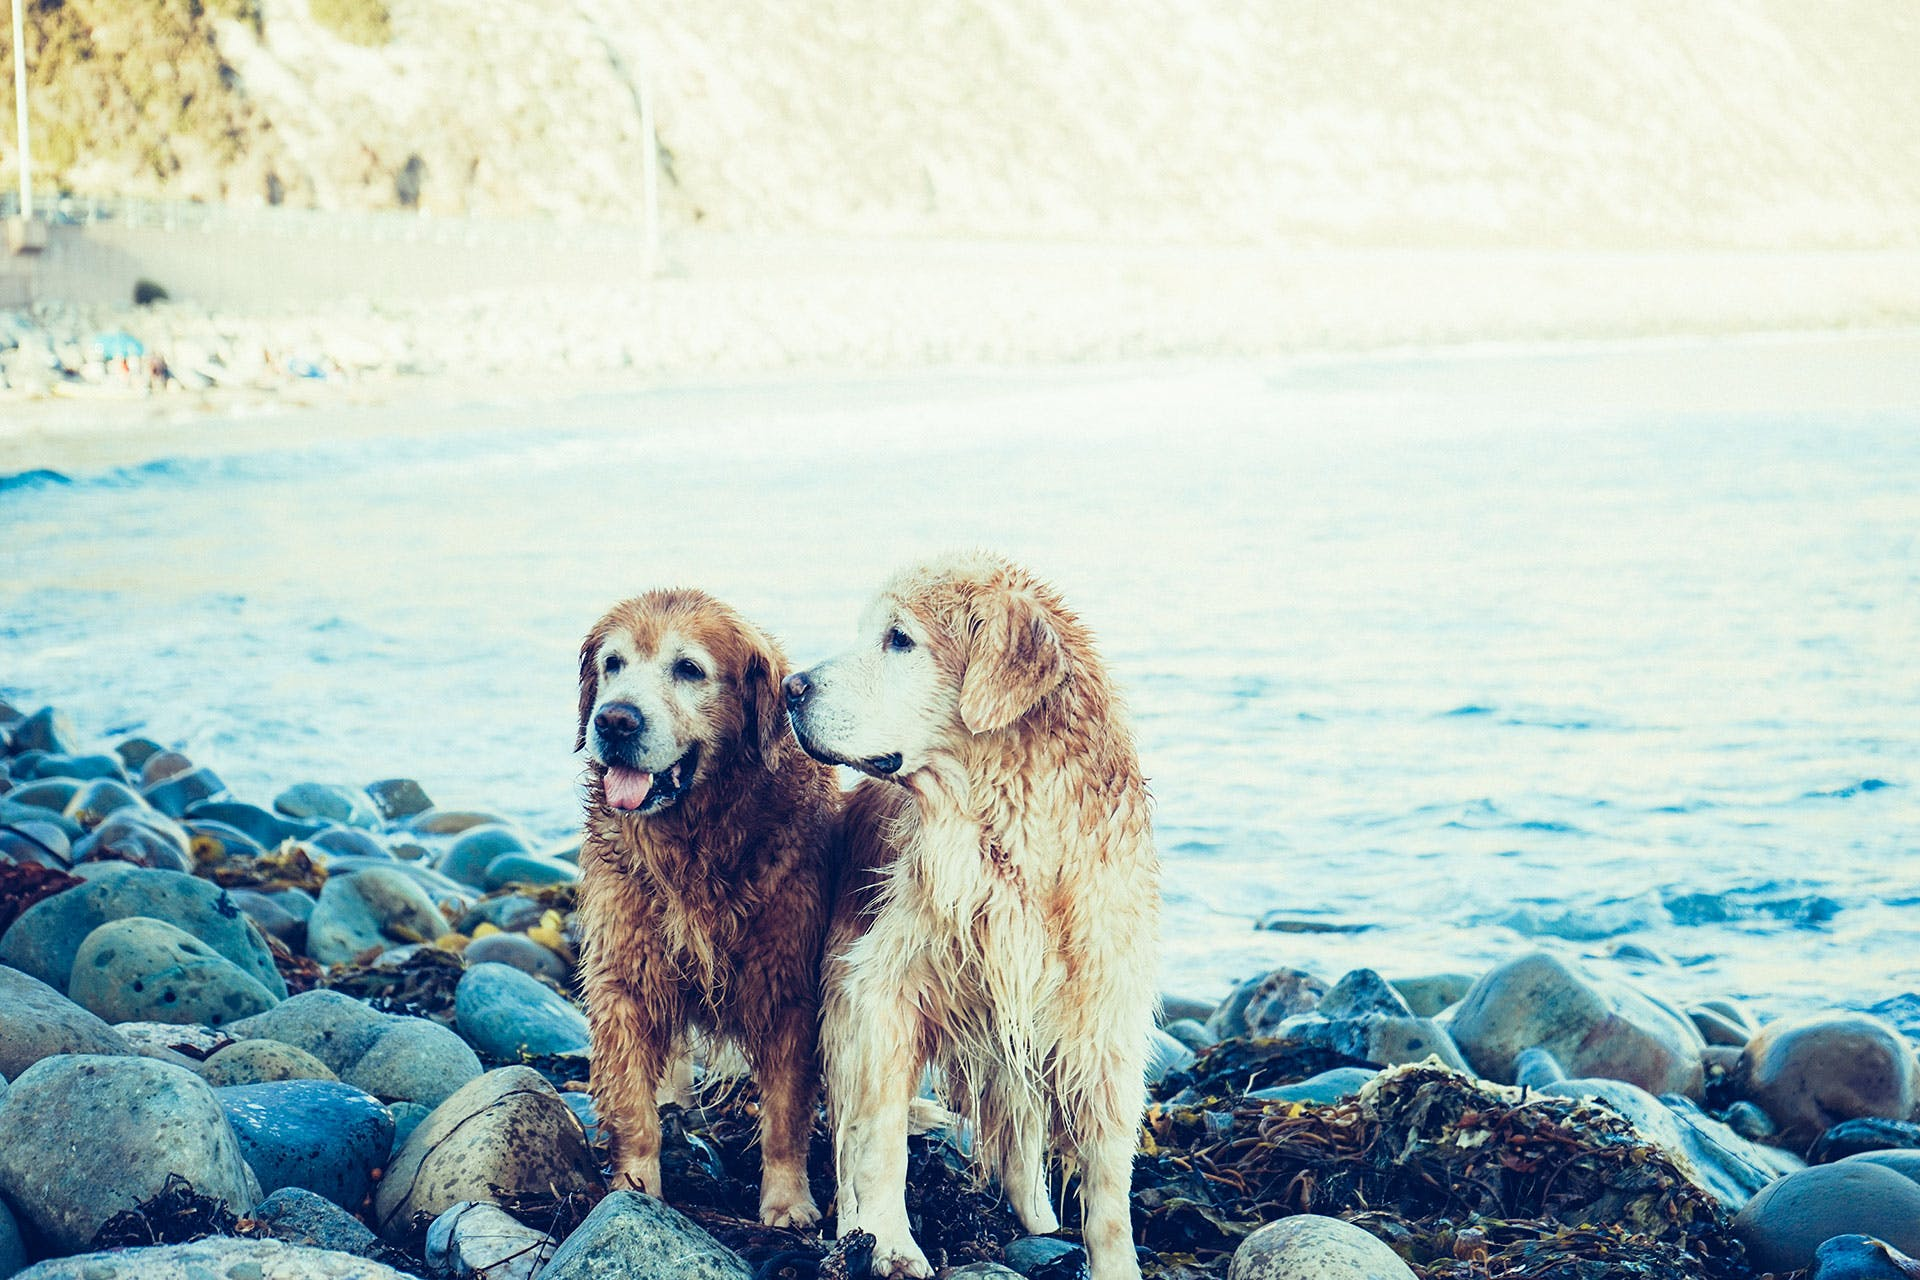 Two Adult Golden Retrievers Near the Body of Water